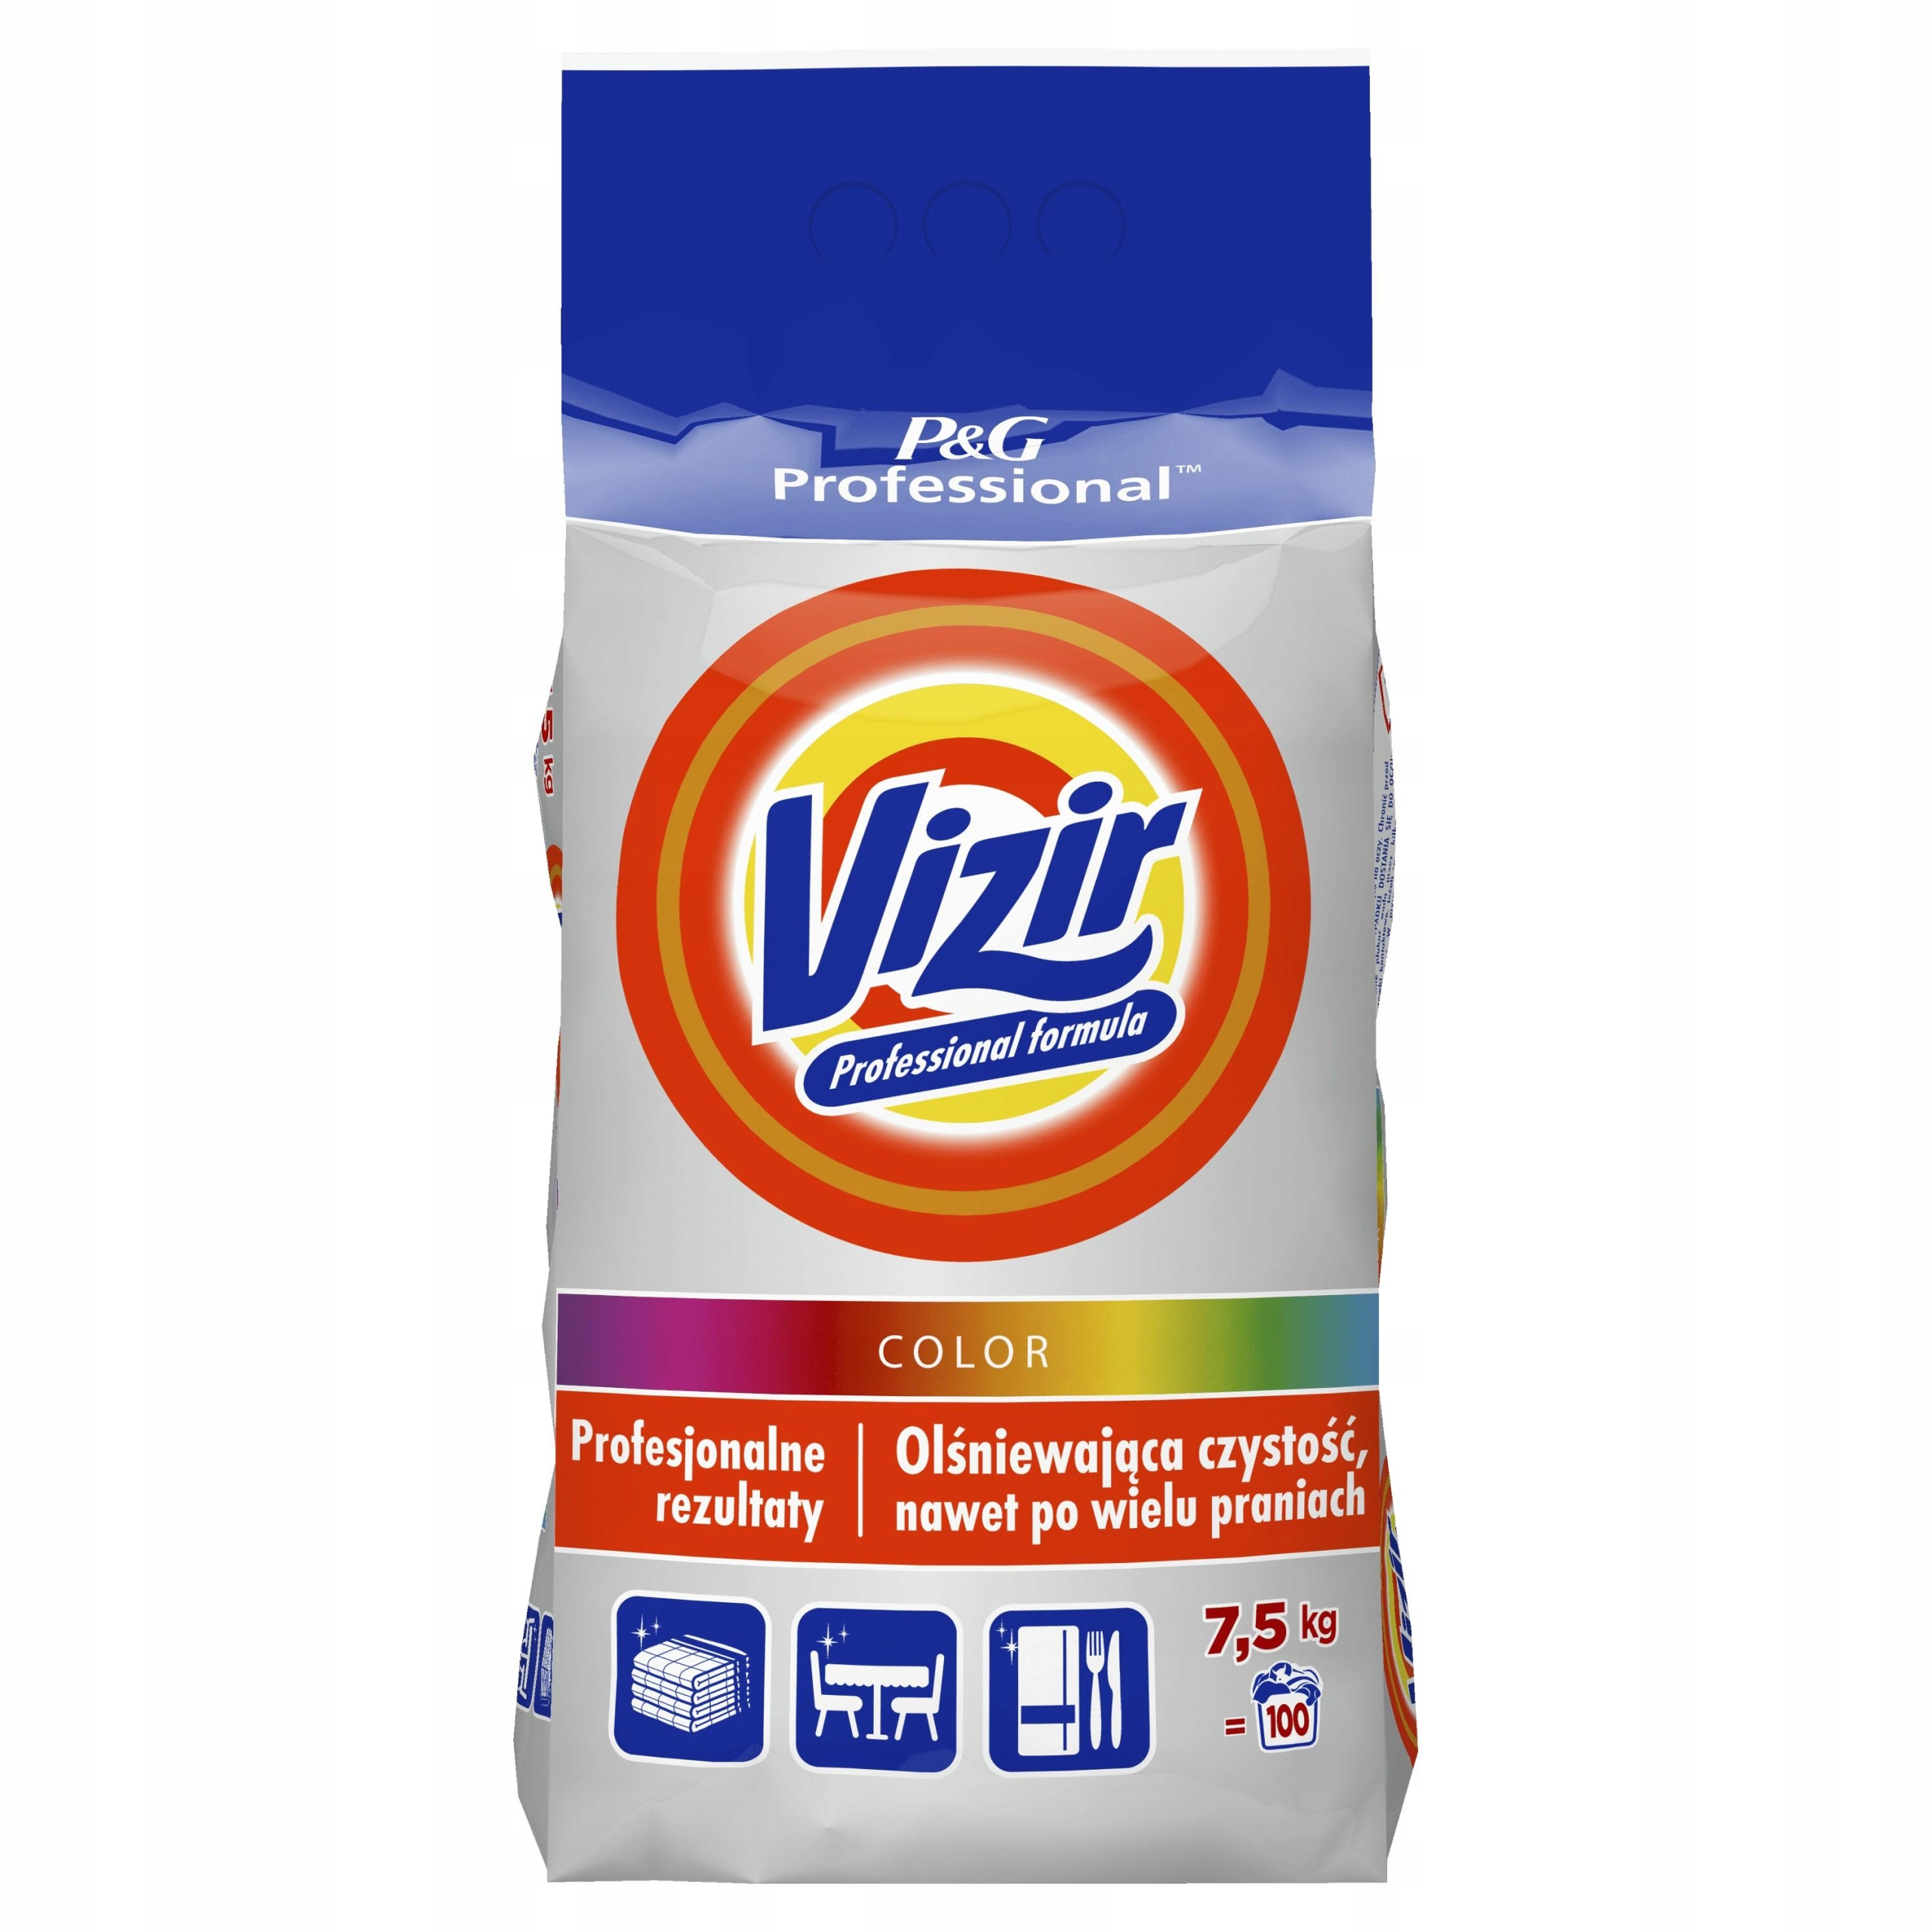 WASHING POWDER VIZIR COLOR 7,5 кг Профессиональный